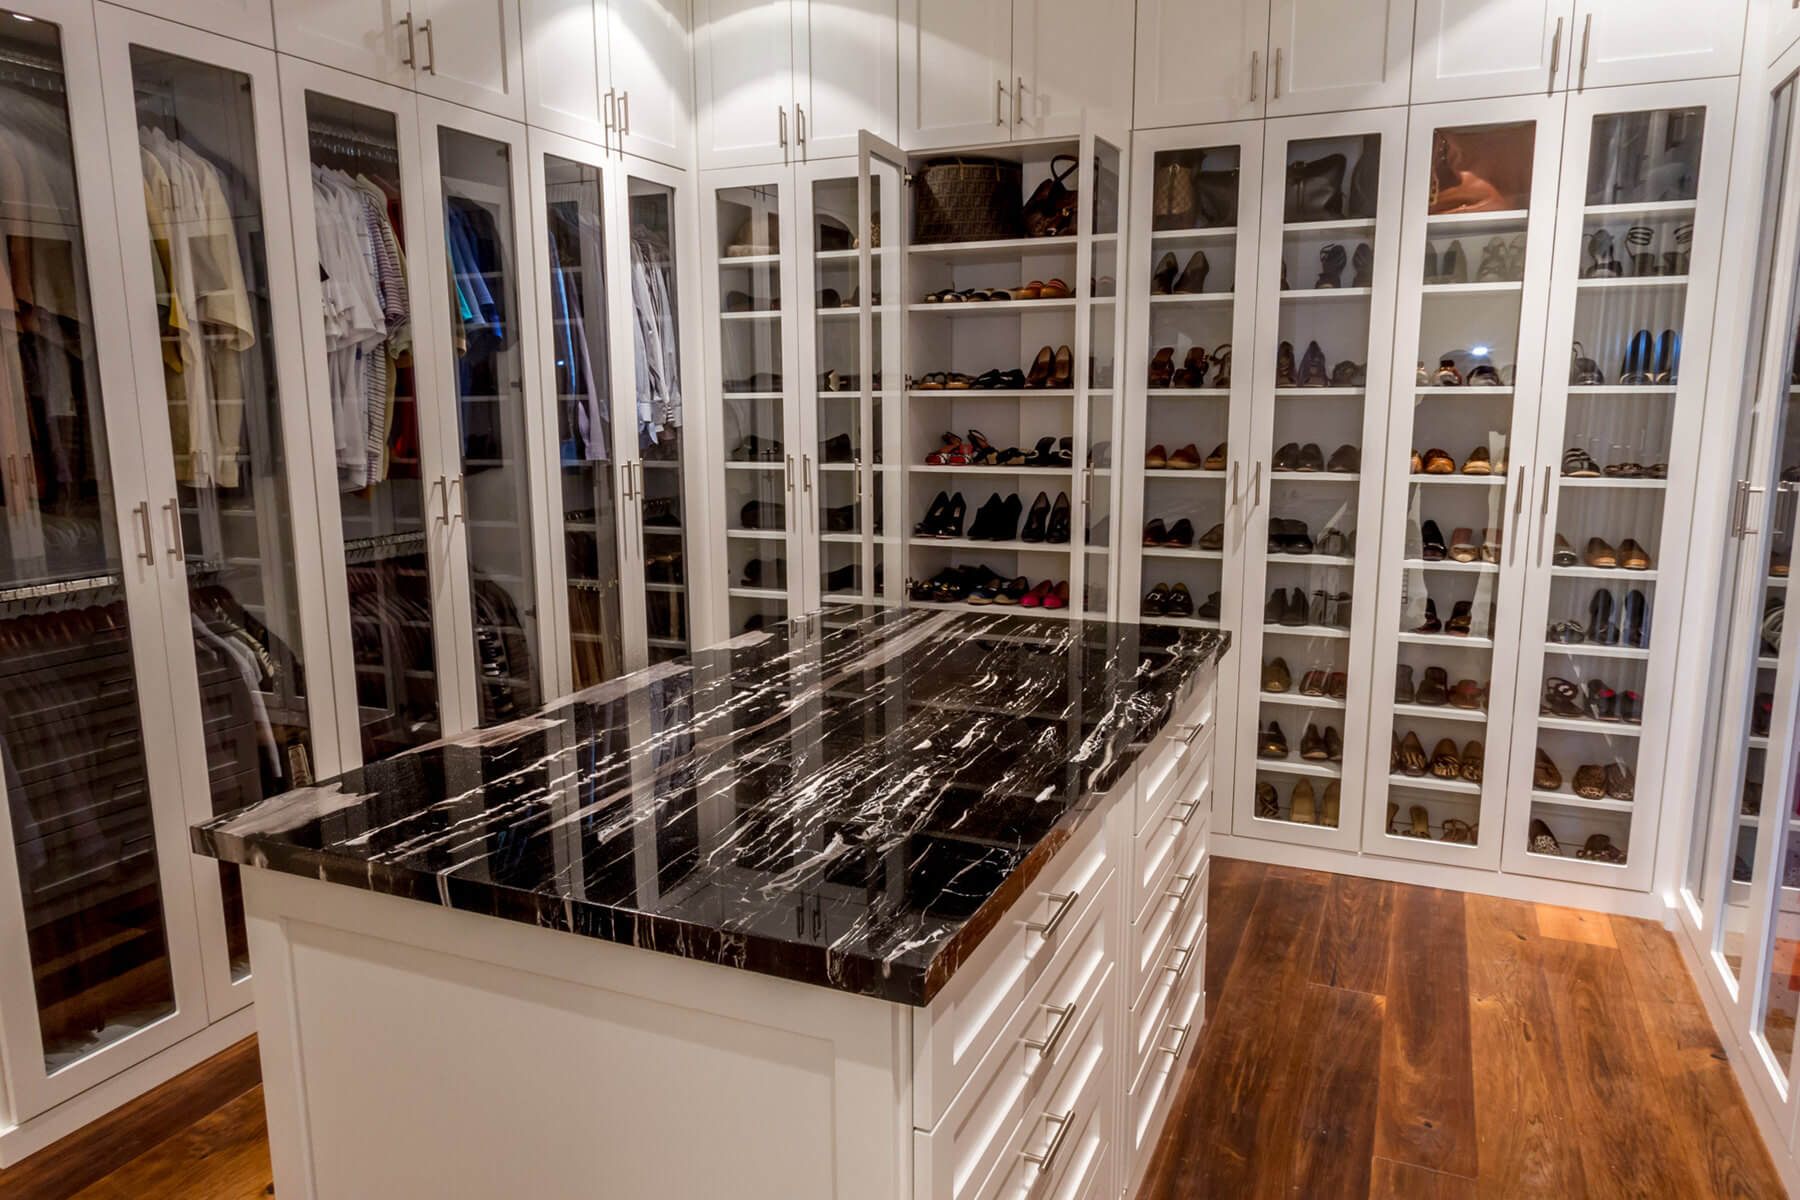 67 reach in and walk in bedroom closet storage systems for Adding a walk in closet